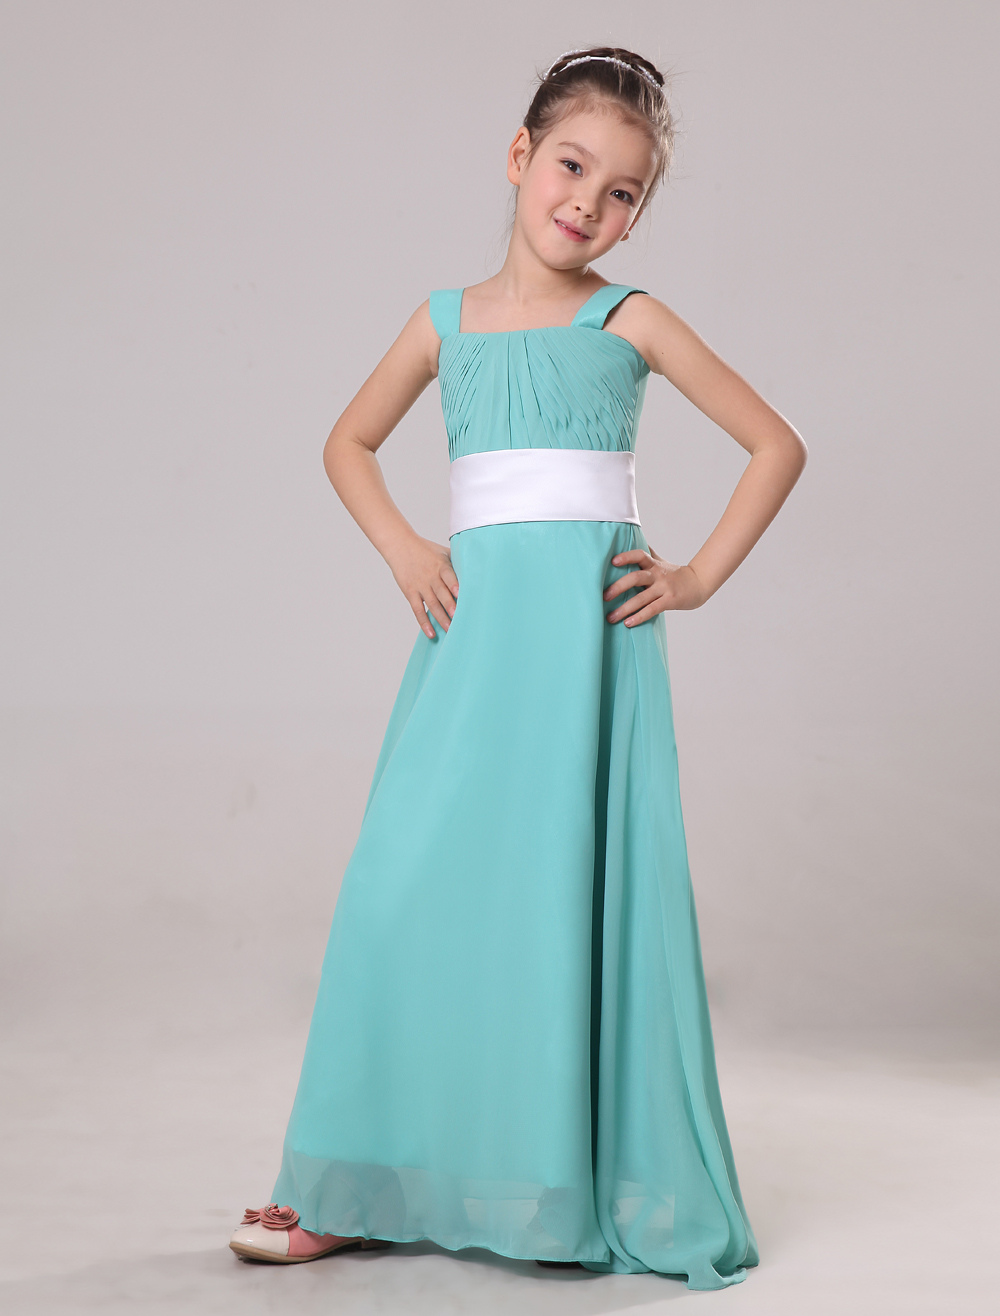 Amazing Blue Chiffon Square Neck Floor Length Junior Bridesmaid Dress